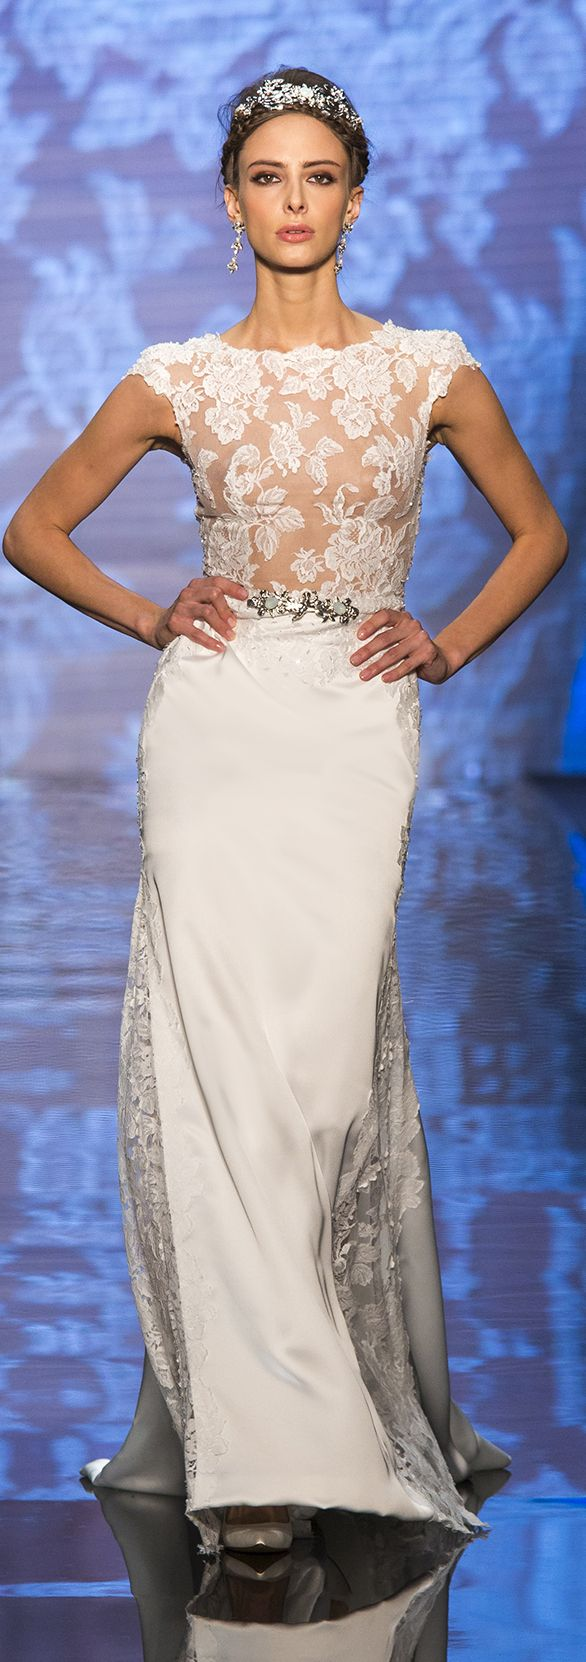 Alessandra Rinaudo Bridal Couture 2017 Collection.  Wedding dress made of beading lace, satin and jewels.   www.alessandrarinaudo.it